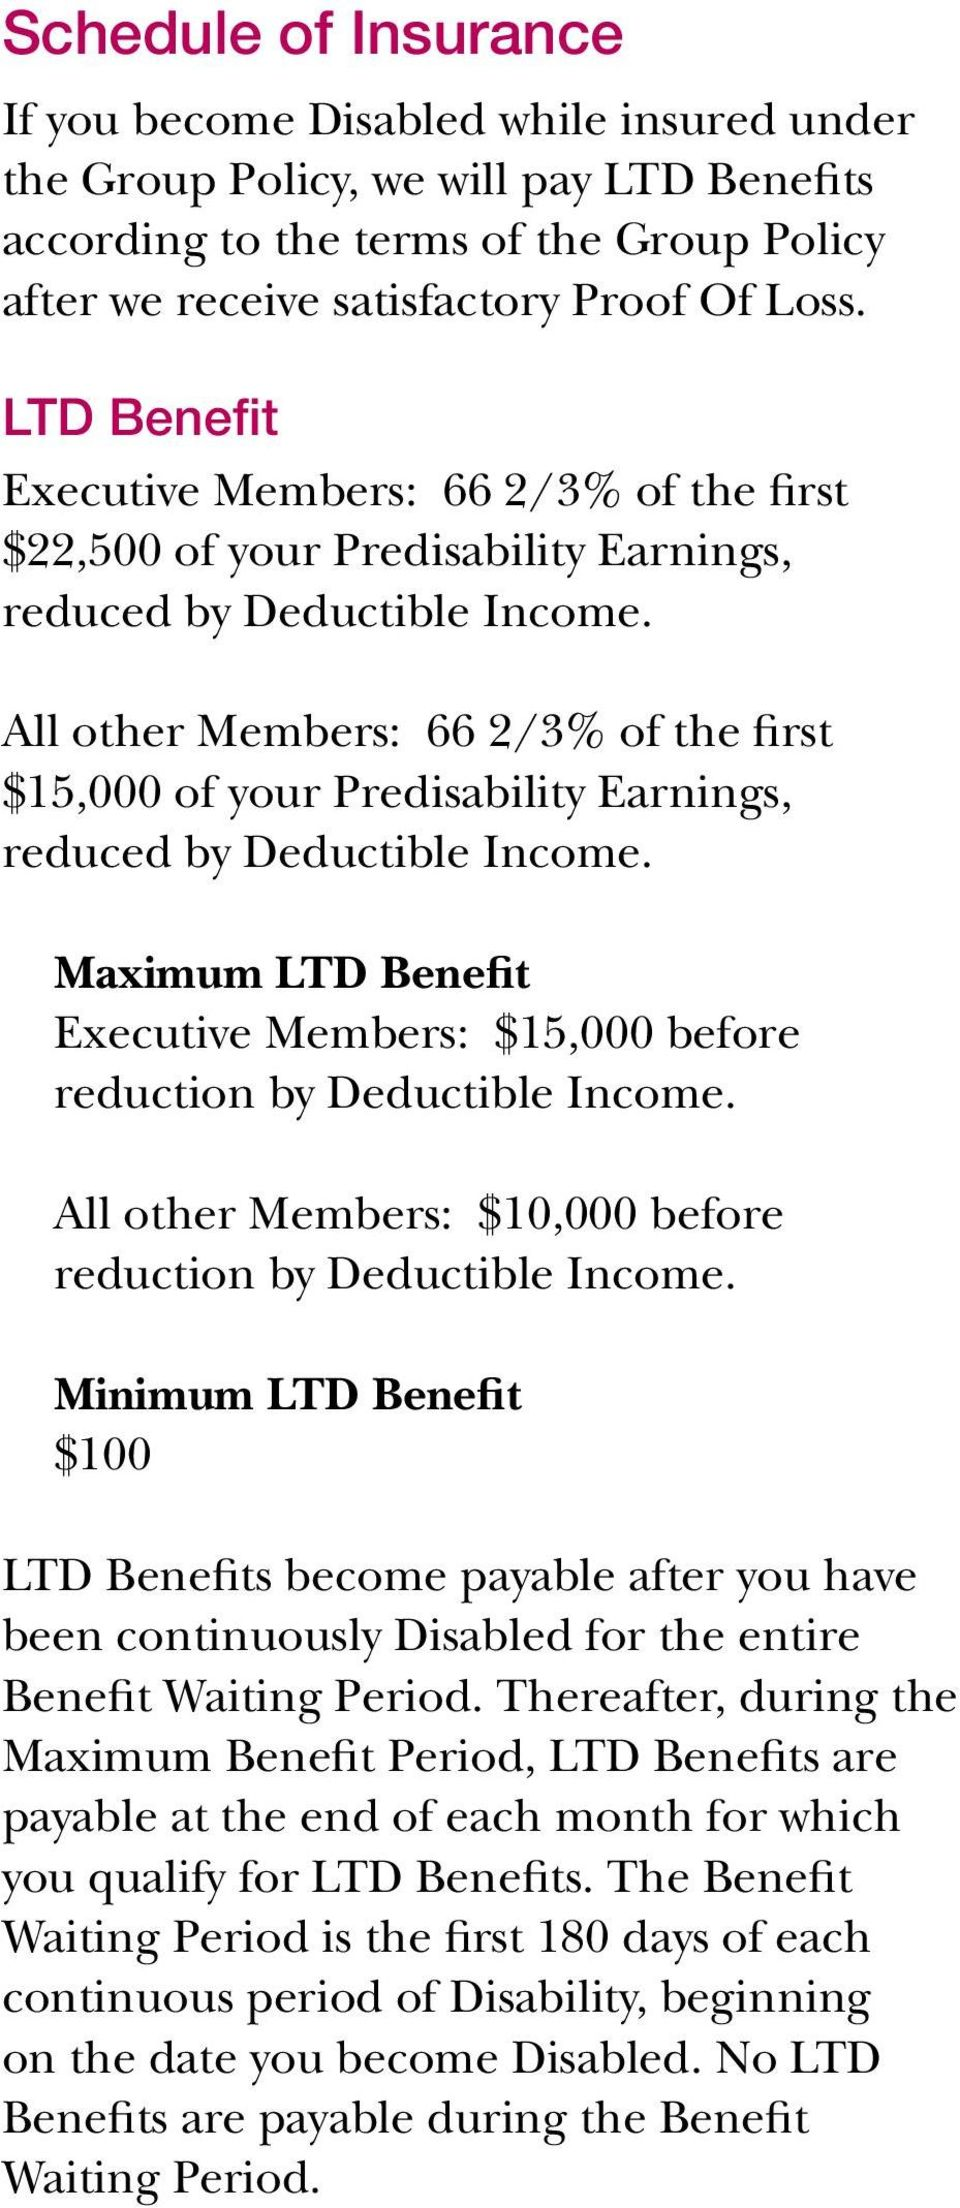 All other Members: 66 2/3% of the first $15,000 of your Predisability Earnings, reduced by Deductible Income. Maximum LTD Benefit Executive Members: $15,000 before reduction by Deductible Income.